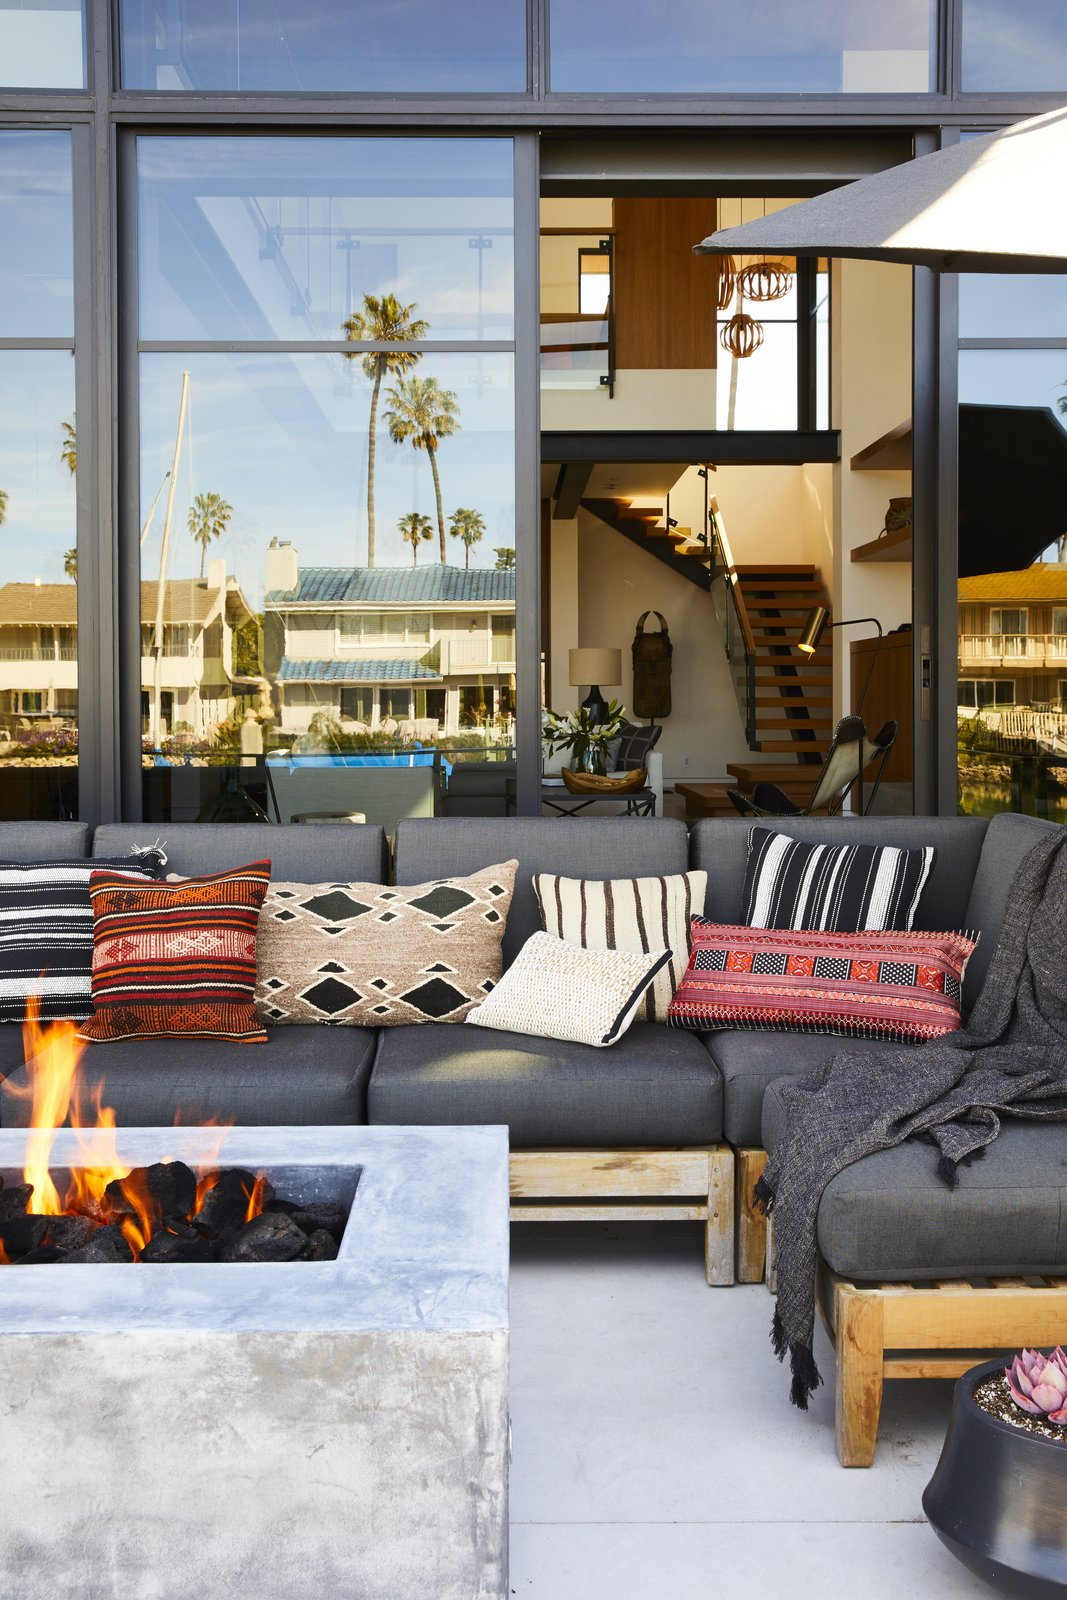 """Outdoor, Back Yard, Concrete Patio, Porch, Deck, and Planters Patio, Porch, Deck """"The home is special because it feels curated, but very personal,  Photo 4 of 19 in 18 Modern Fireplaces and Fire Pits to Inspire Outdoor Living from This Renovation Will Make You Rethink the Typical Look of a California Beach House"""